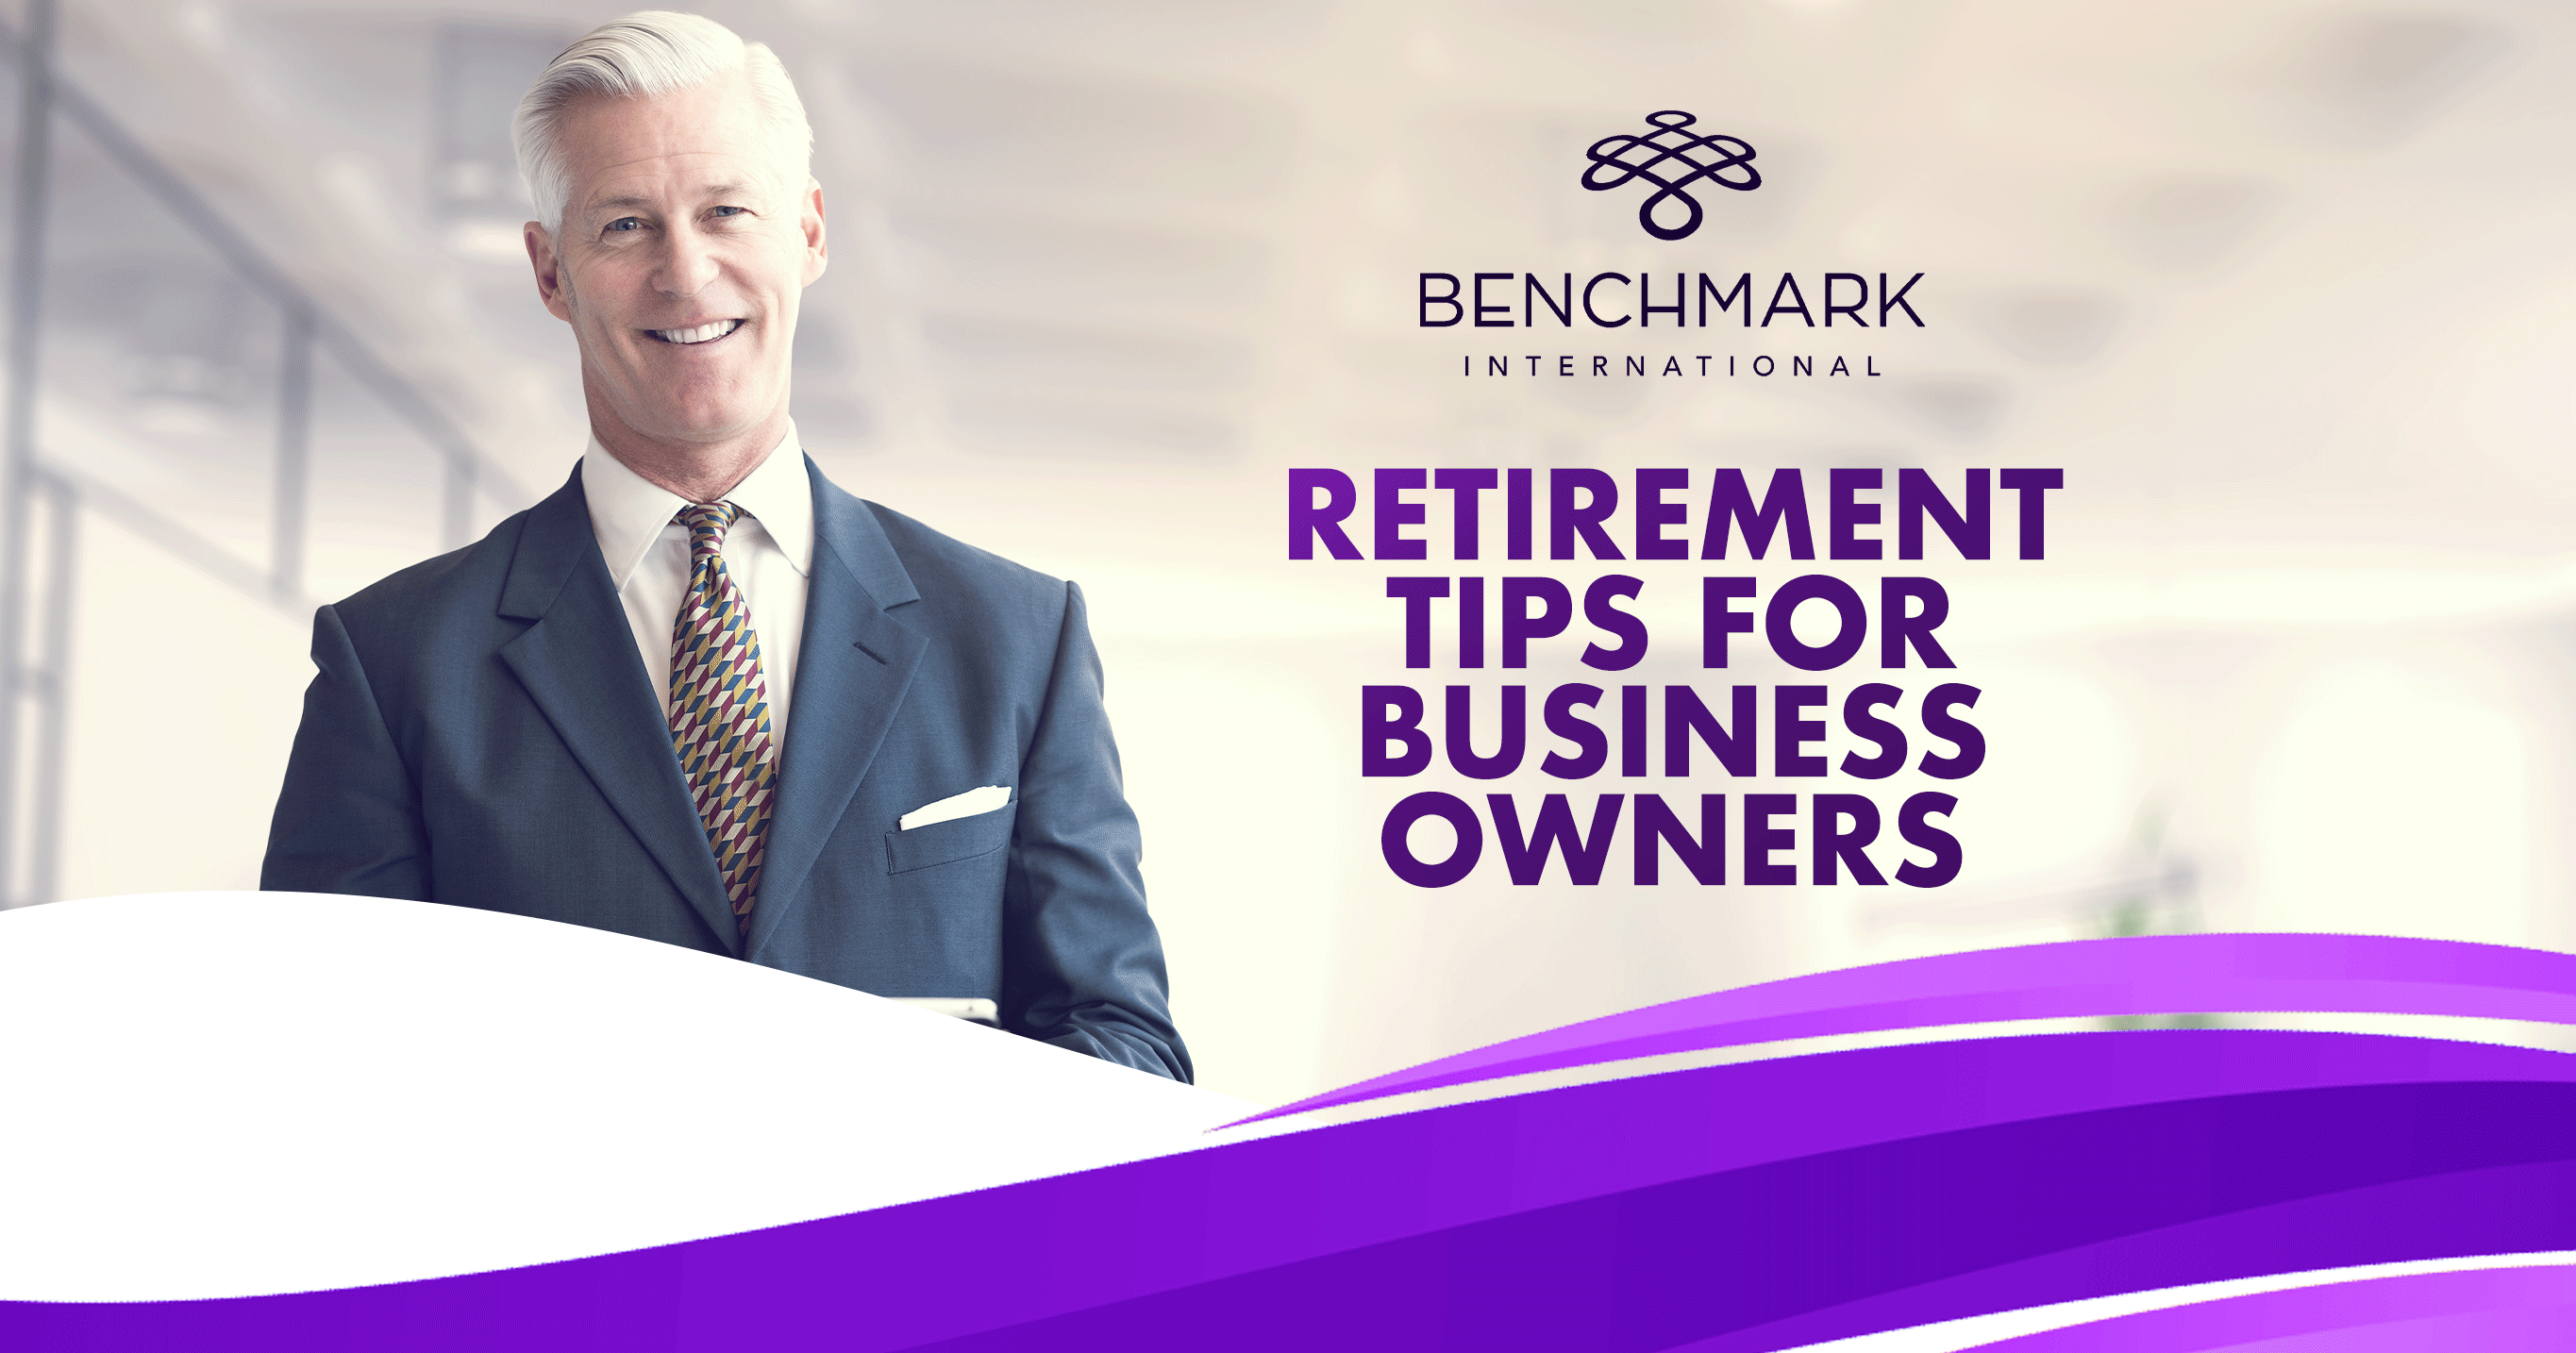 Retirement Tips for Business Owners